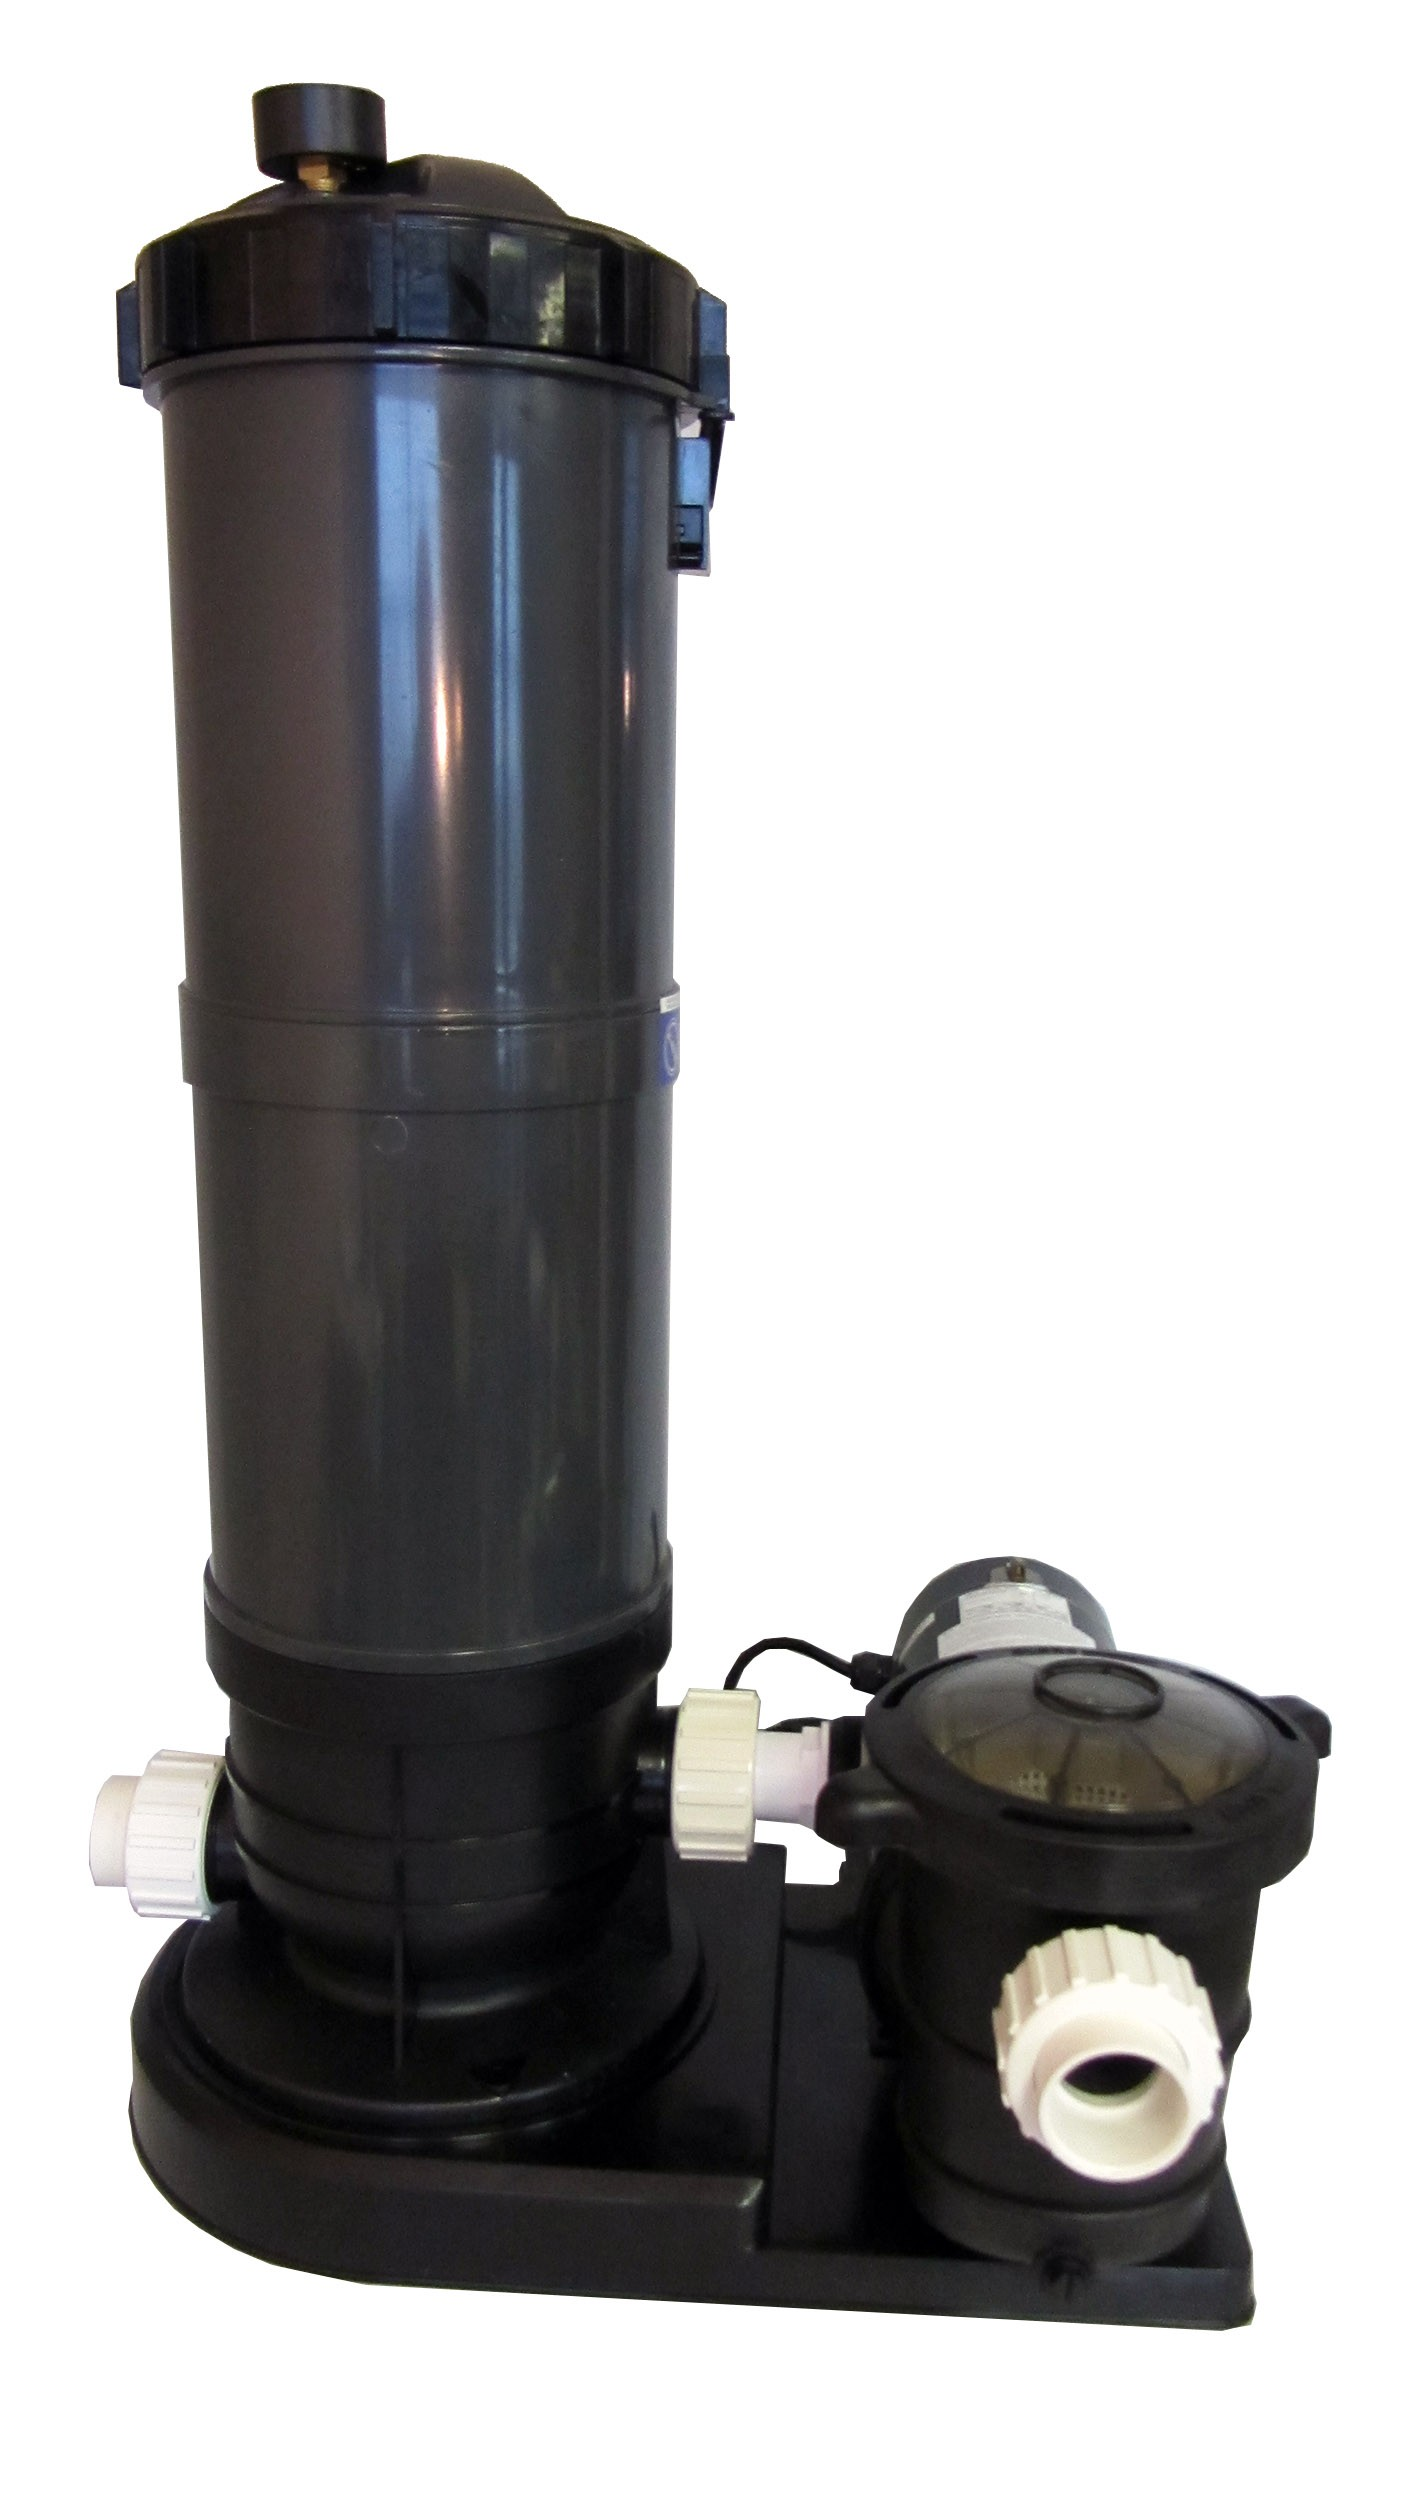 Pool Filter Pump Pressure This Filter System Has Set The Standard For Quality Superior Flow